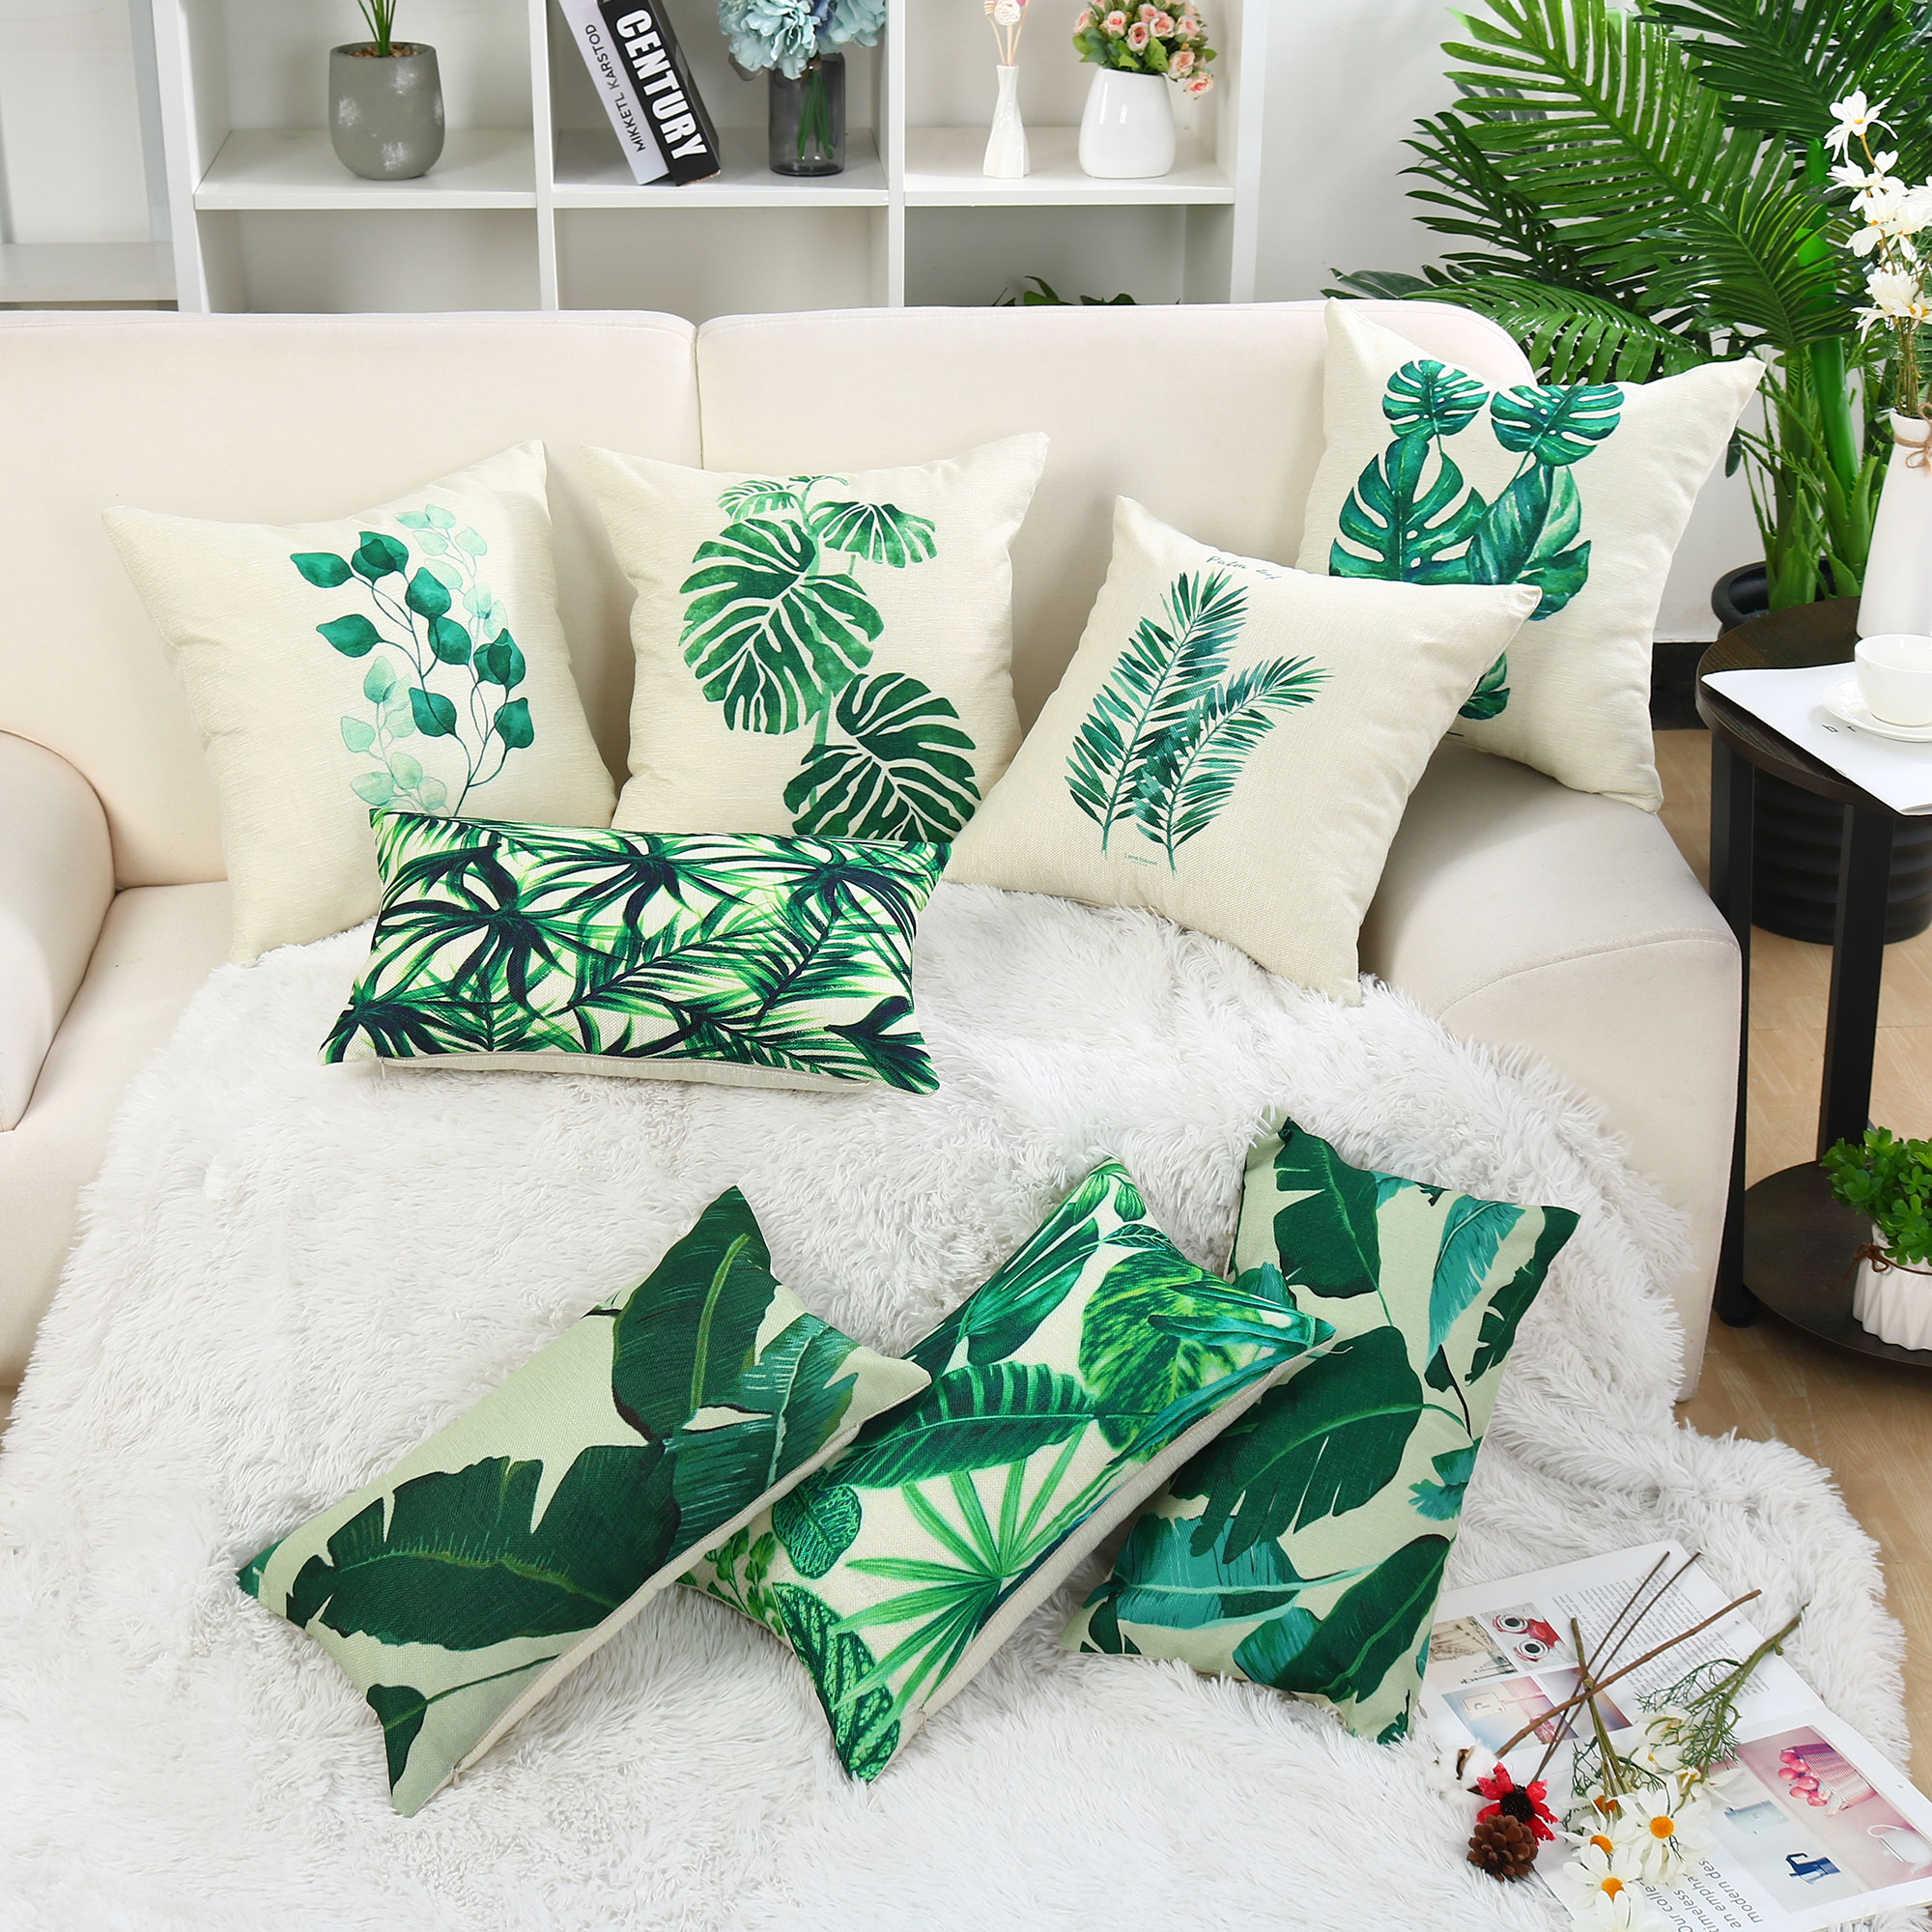 2pcs Green Leaves Throw Pillow Cover Pattern Cushion Cover Cotton Plant Pillow Case Sofa Home Decorative(18 x18 Inch,#2)